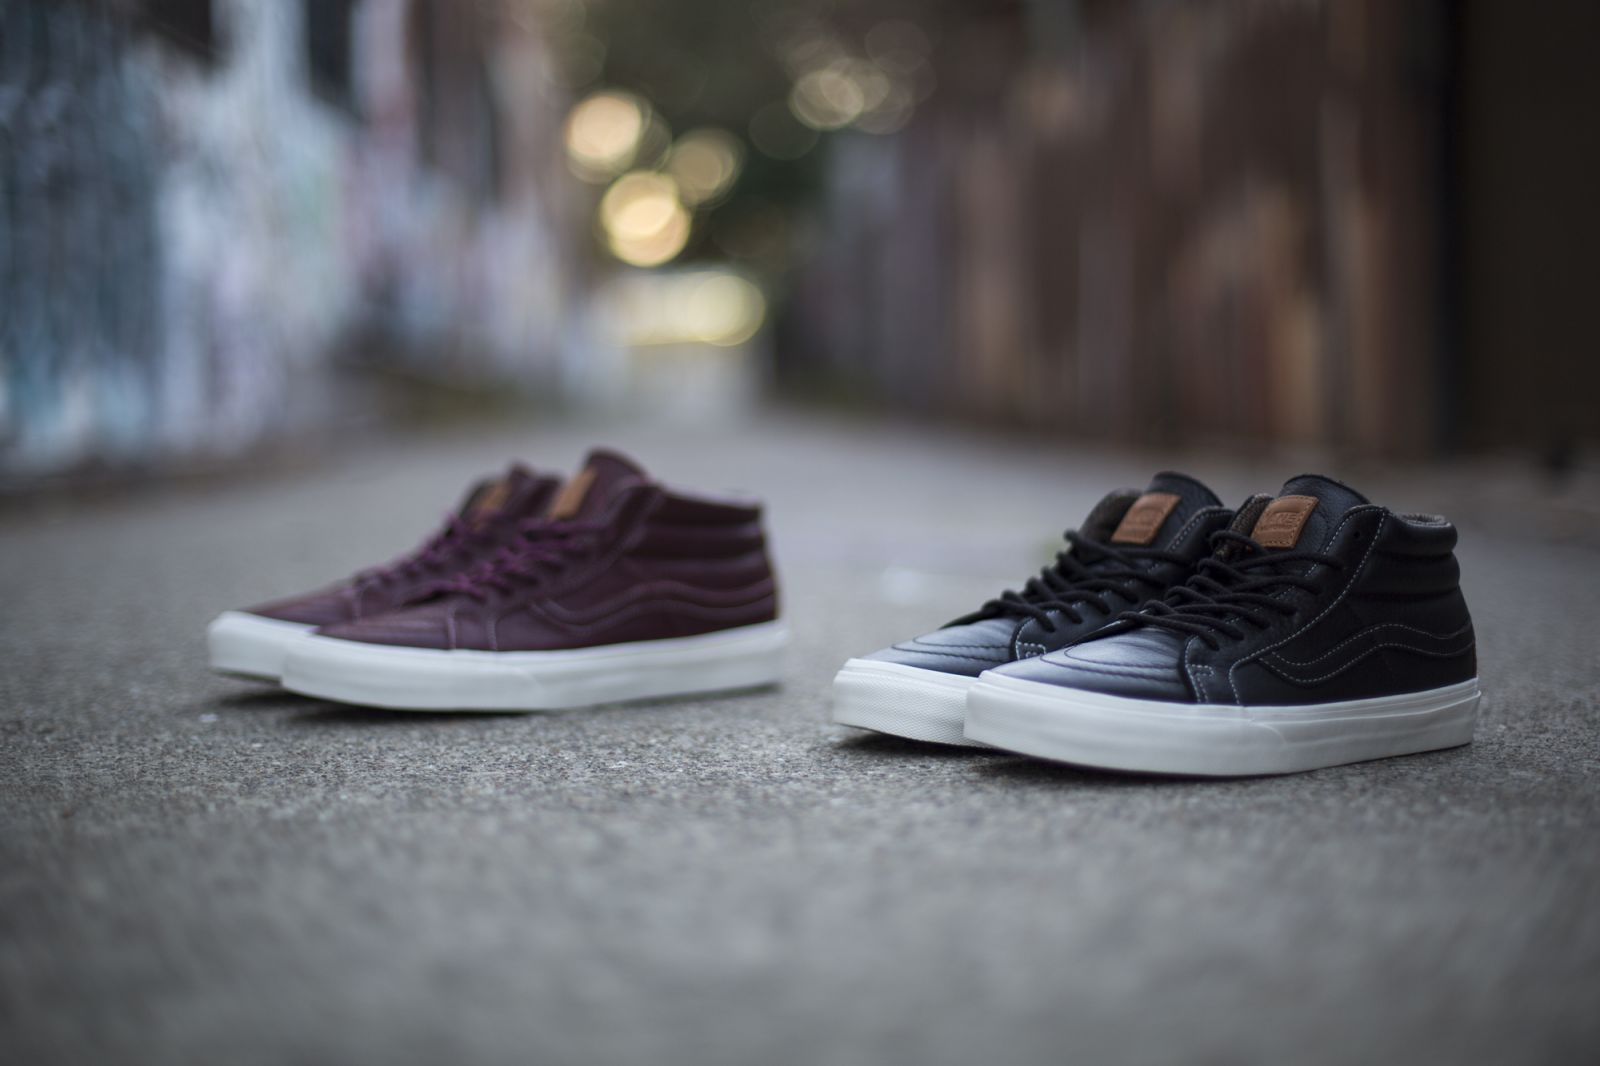 vans-california-sk8-mid-waxed-leather-pack-1